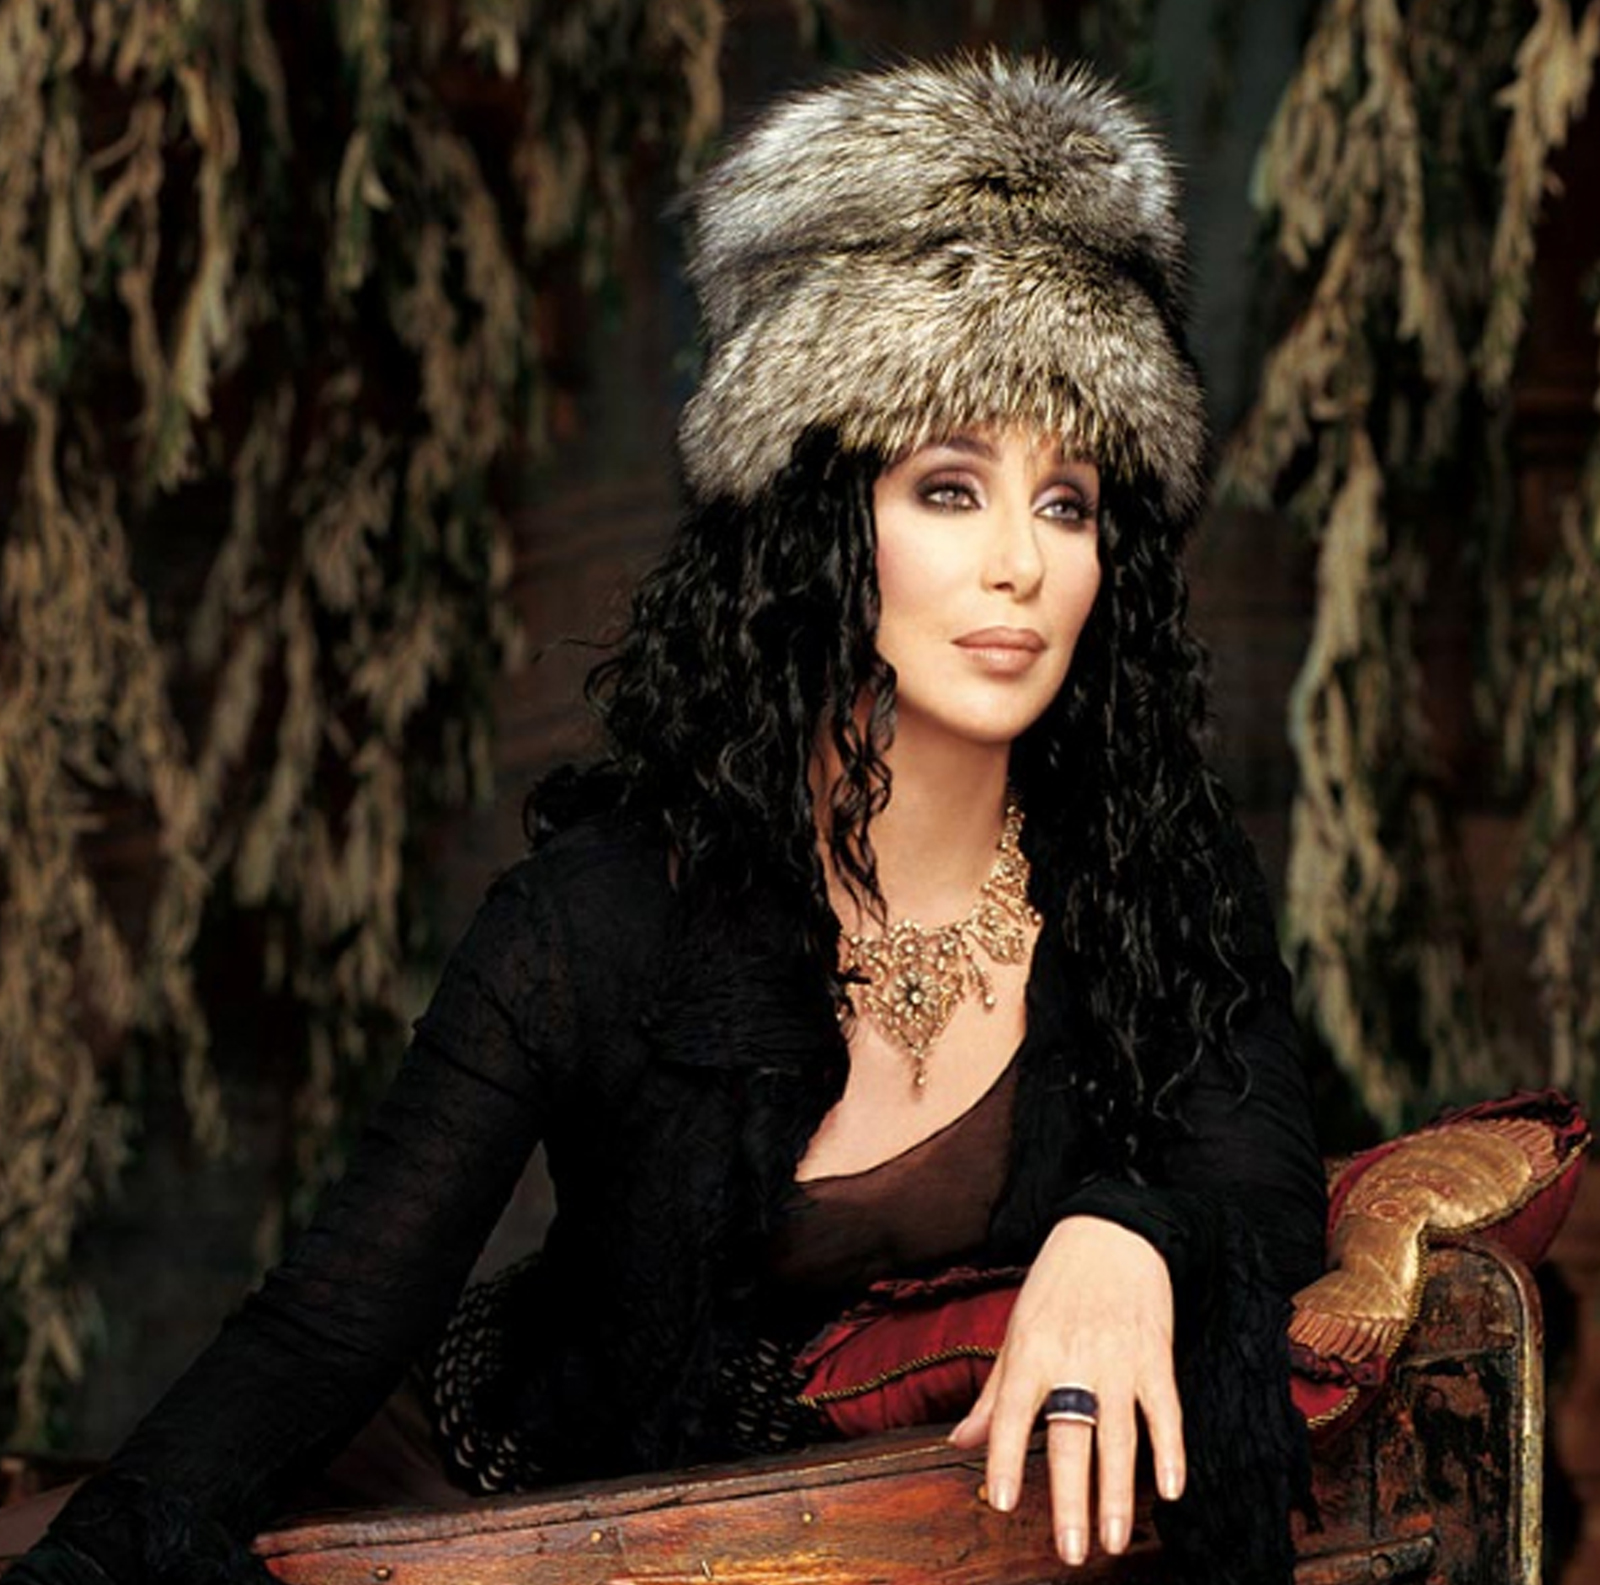 Cher 80s Bands and Artists Explore the music, videos and